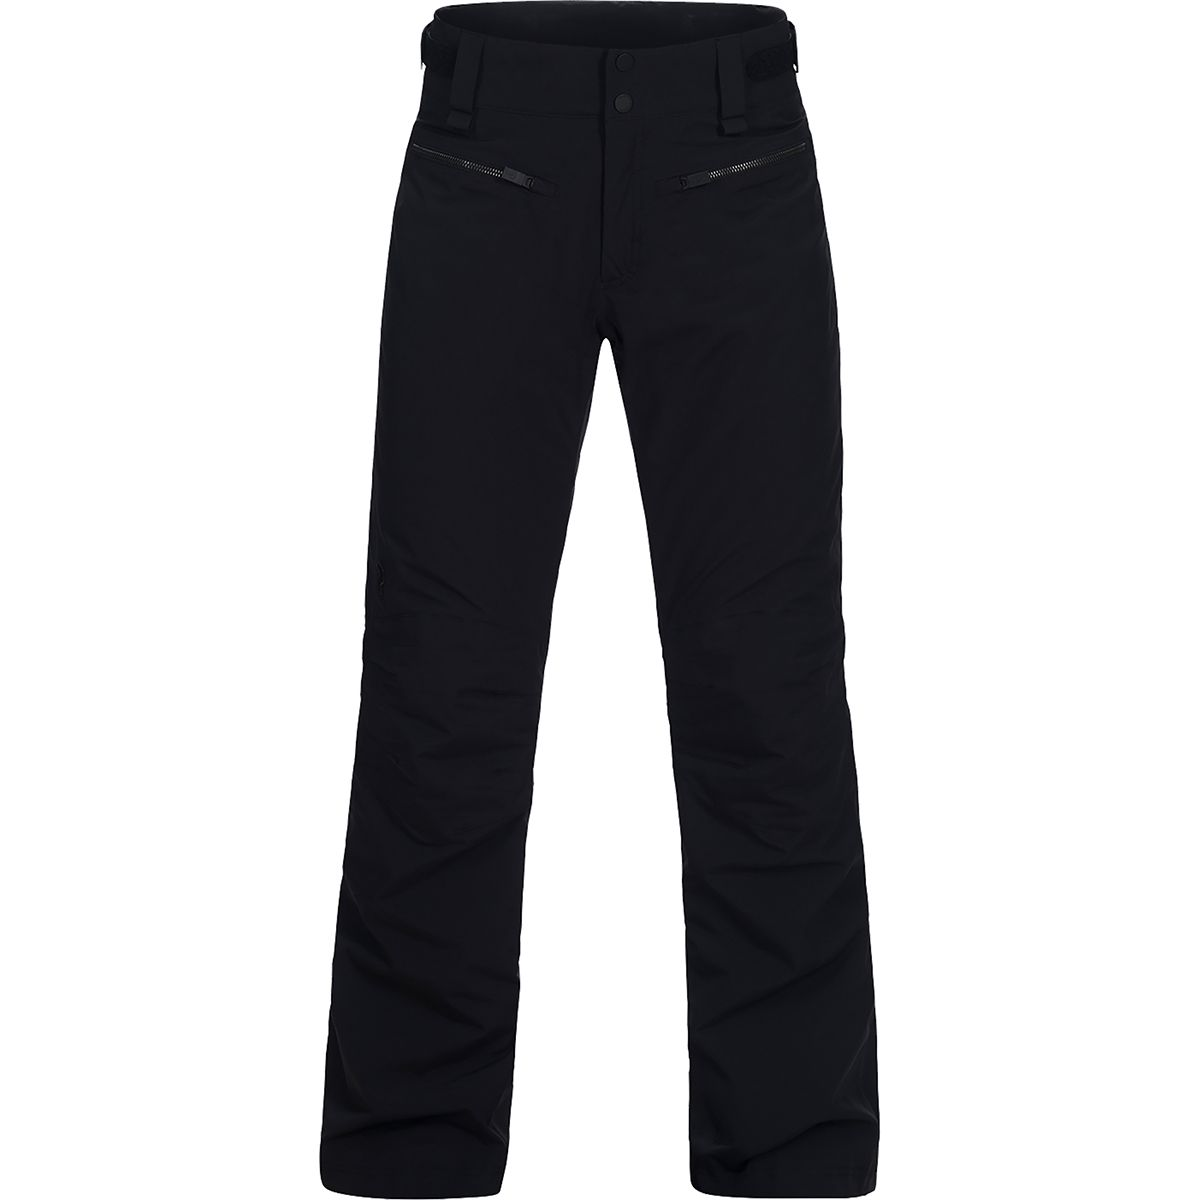 Peak Performance Damen Scoot Hose (Größe L, Schwarz) | Skihosen > Damen